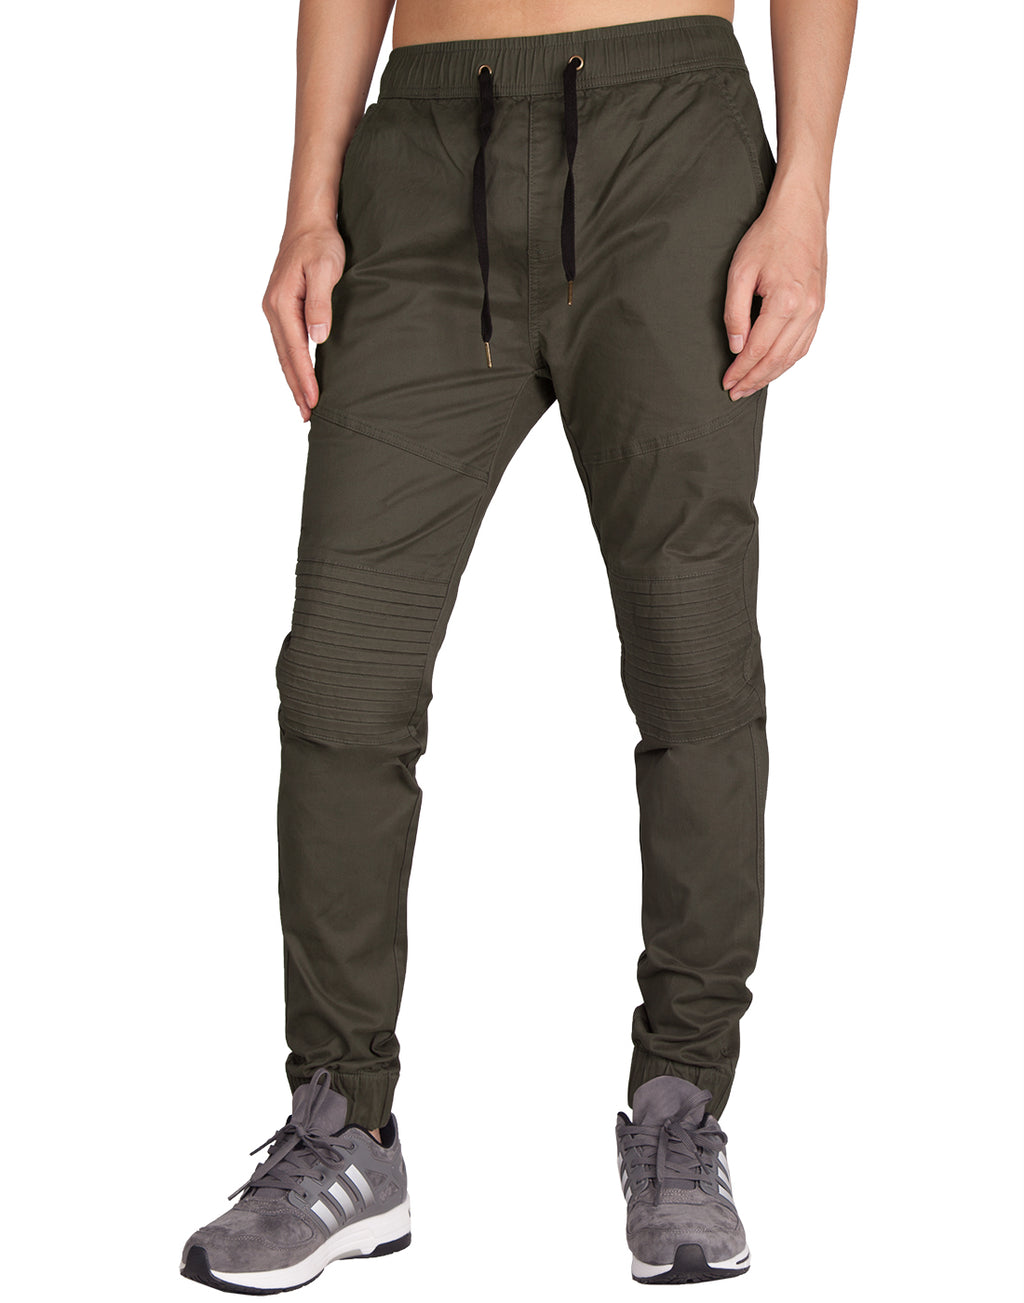 Man Biker Skateboard Jogger Pants Chocolate - italymorn